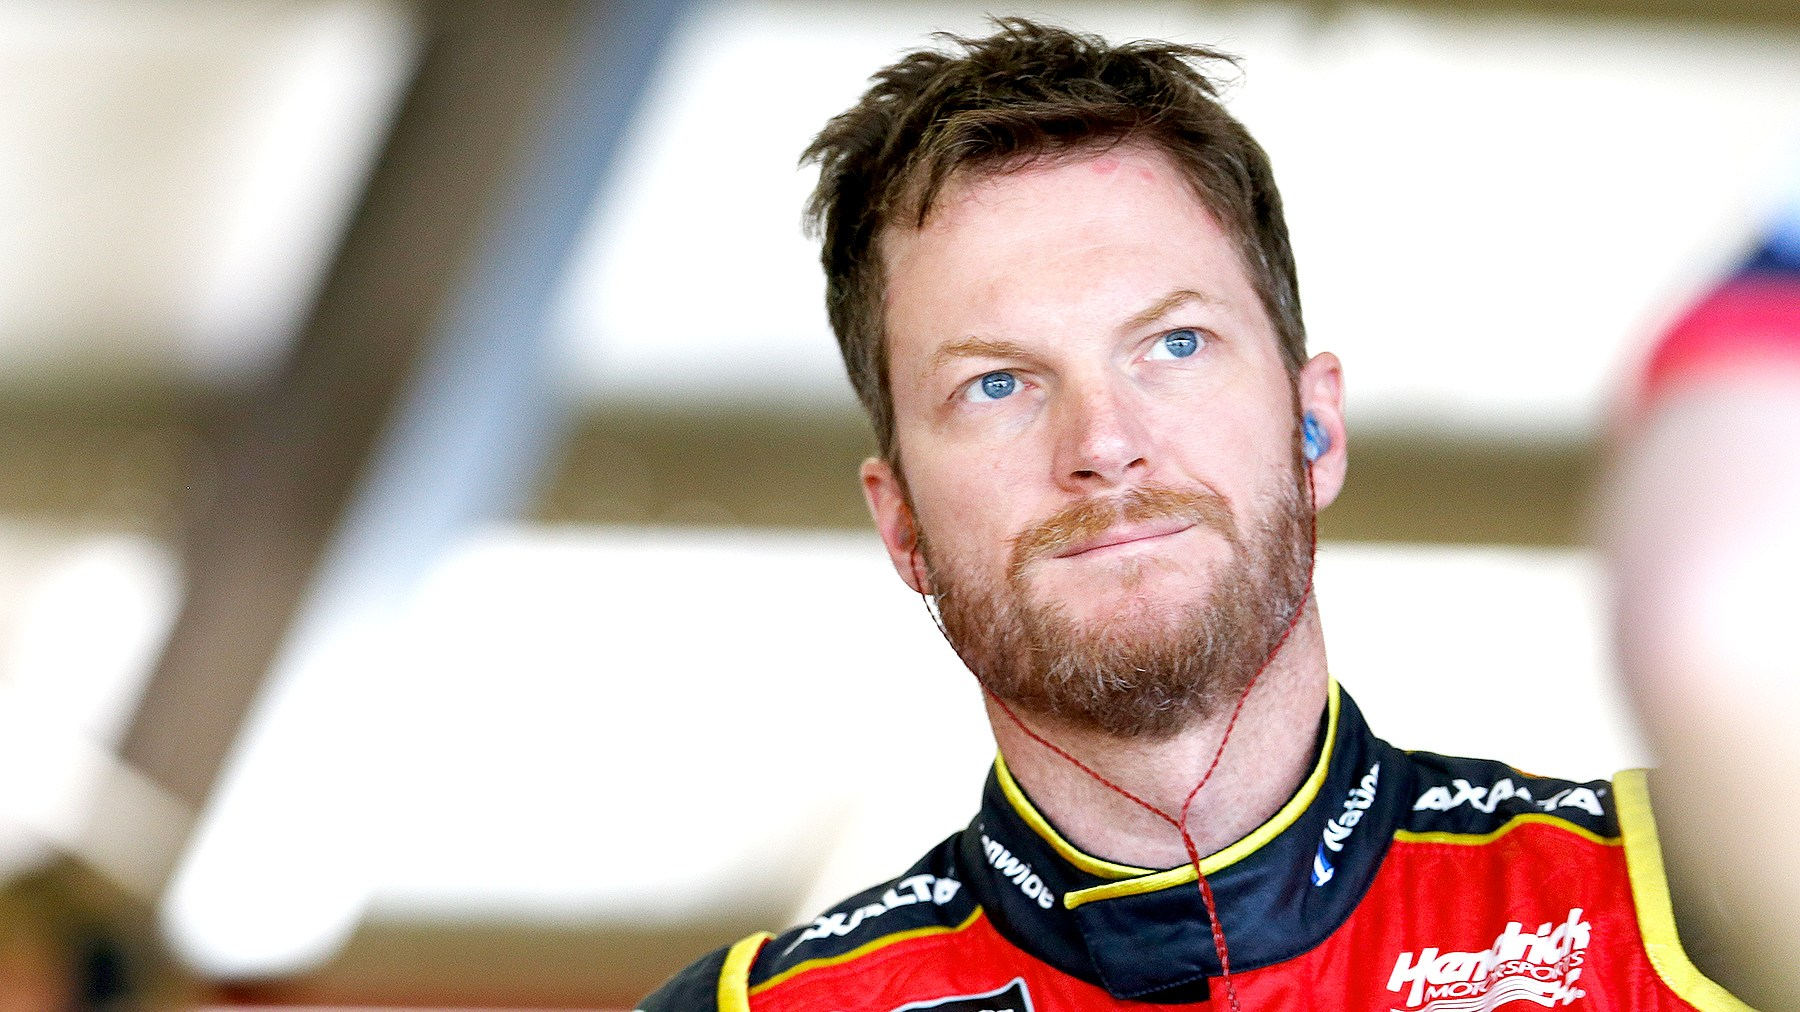 Dale Earnhardt Jr, driver of the #88 Axalta Chevrolet, stands in the garage during practice for the Monster Energy NASCAR Cup Series Auto Club 400 at Auto Club Speedway on March 24, 2017 in Fontana, California.